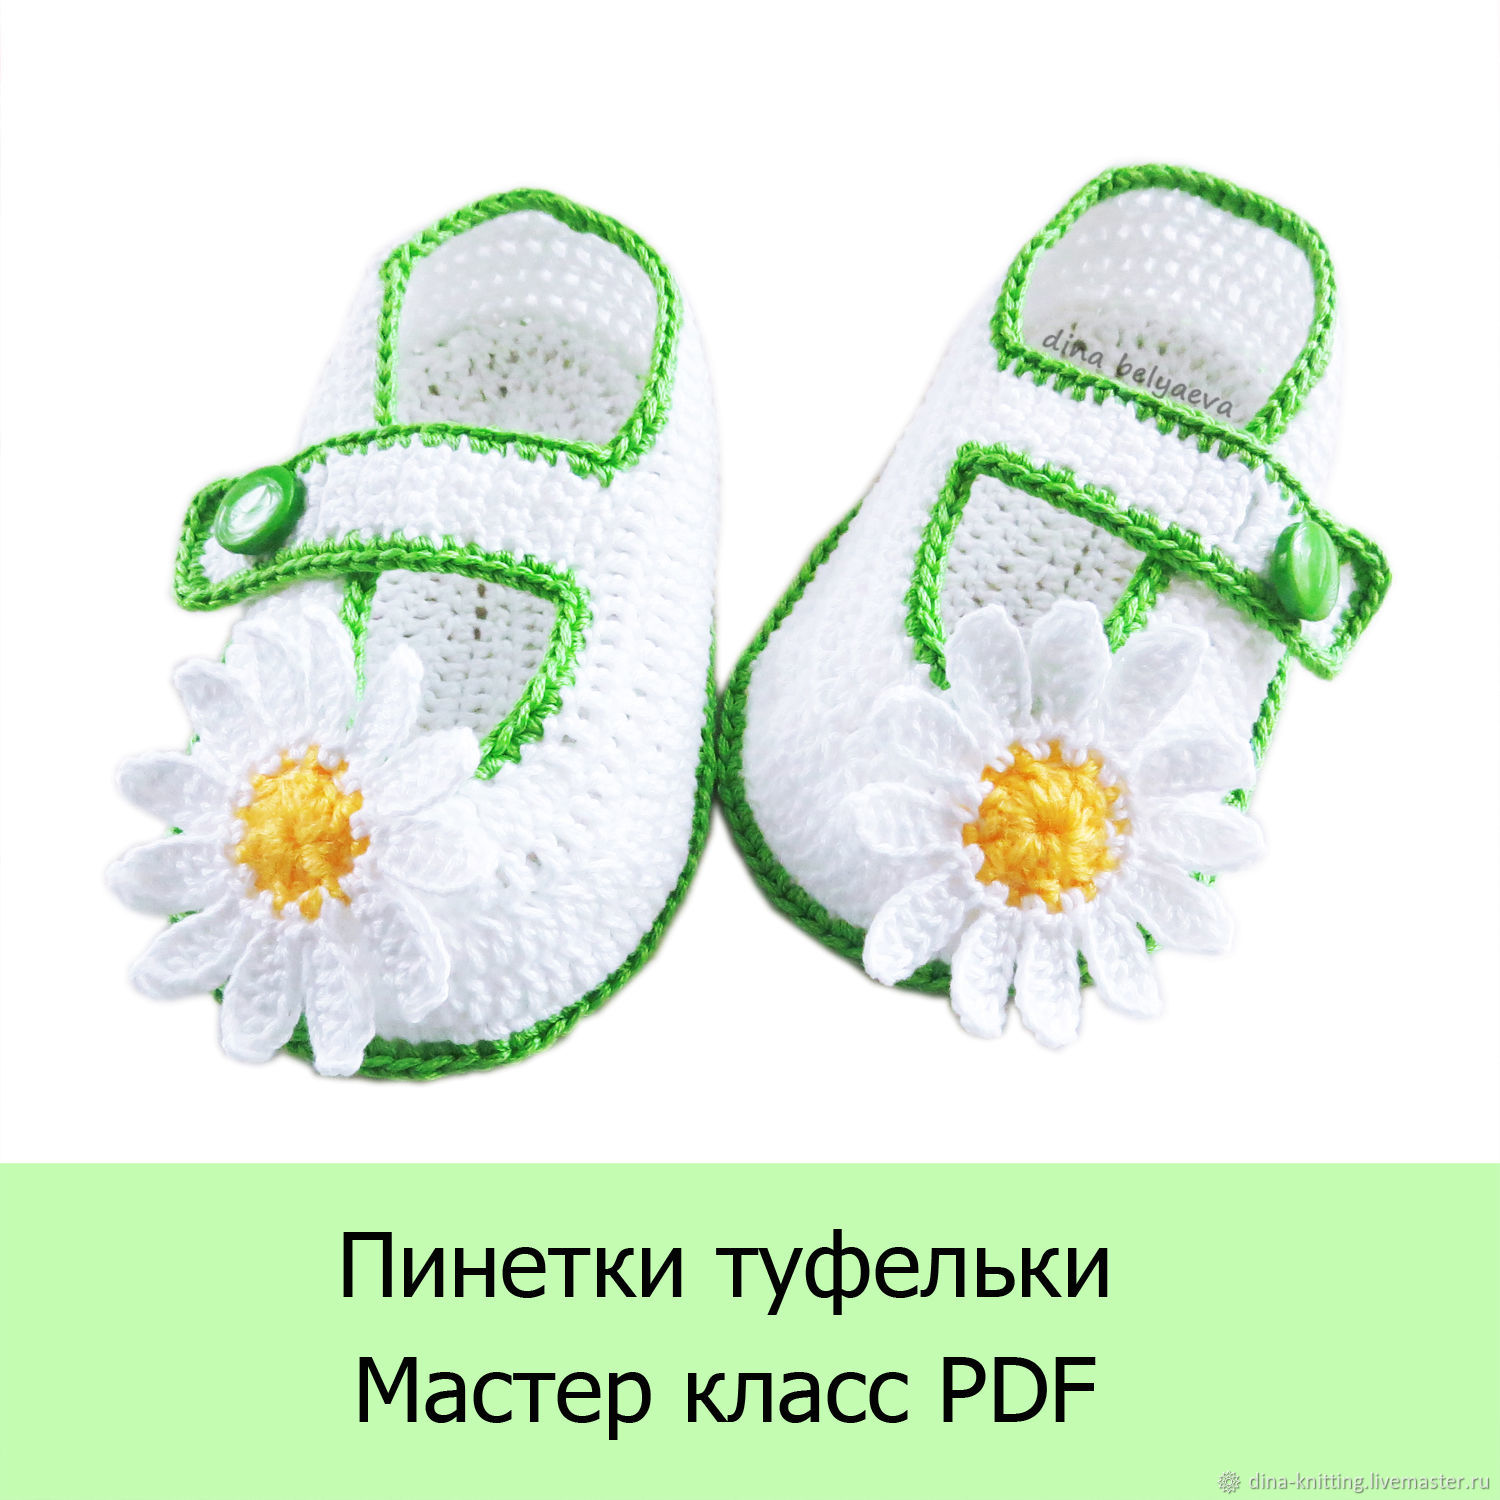 Master class booties shoes crochet for girls MK booties, Knitting patterns, Cheboksary,  Фото №1